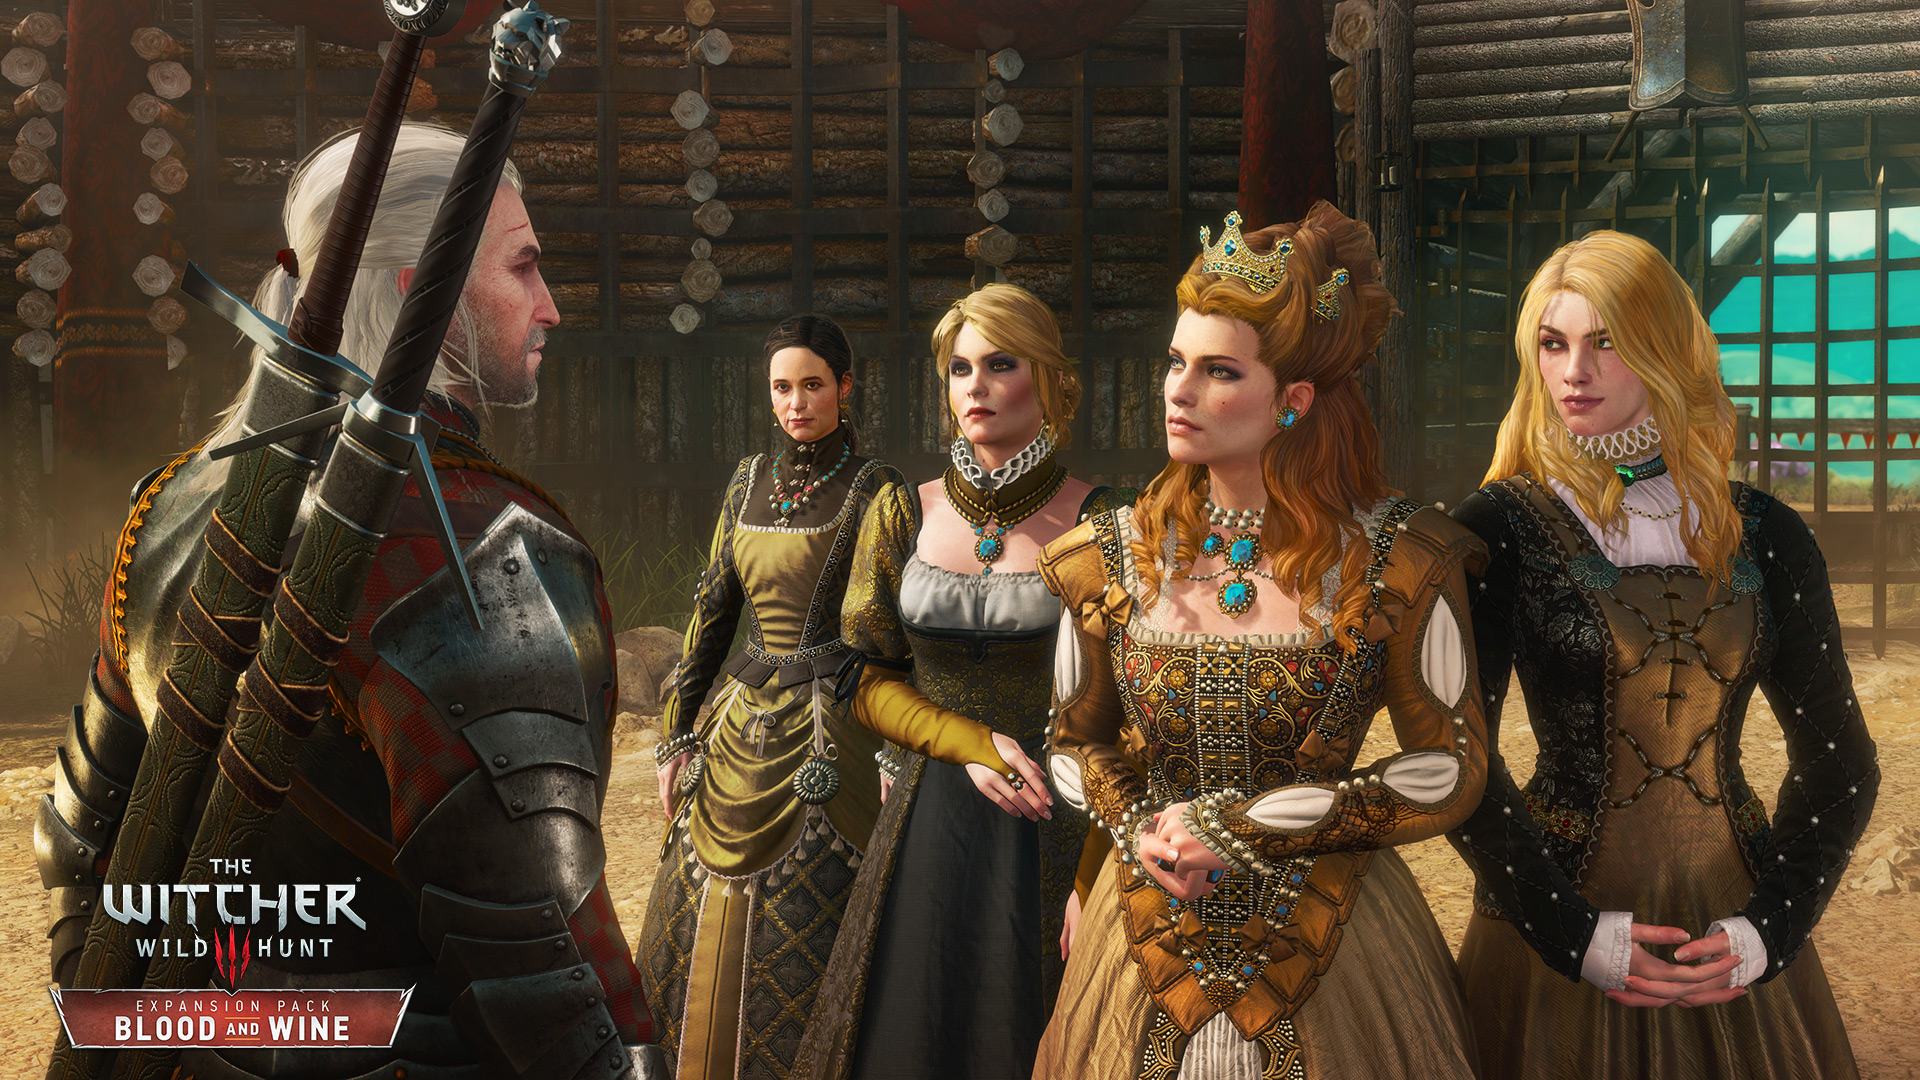 The Witcher 3 Wild Hunt Blood and Wine Anna Henrietta and her entourage RGB EN 1464106314.0 Witcher 3: Blood And Wine Is A Fitting End To Geralts Adventures